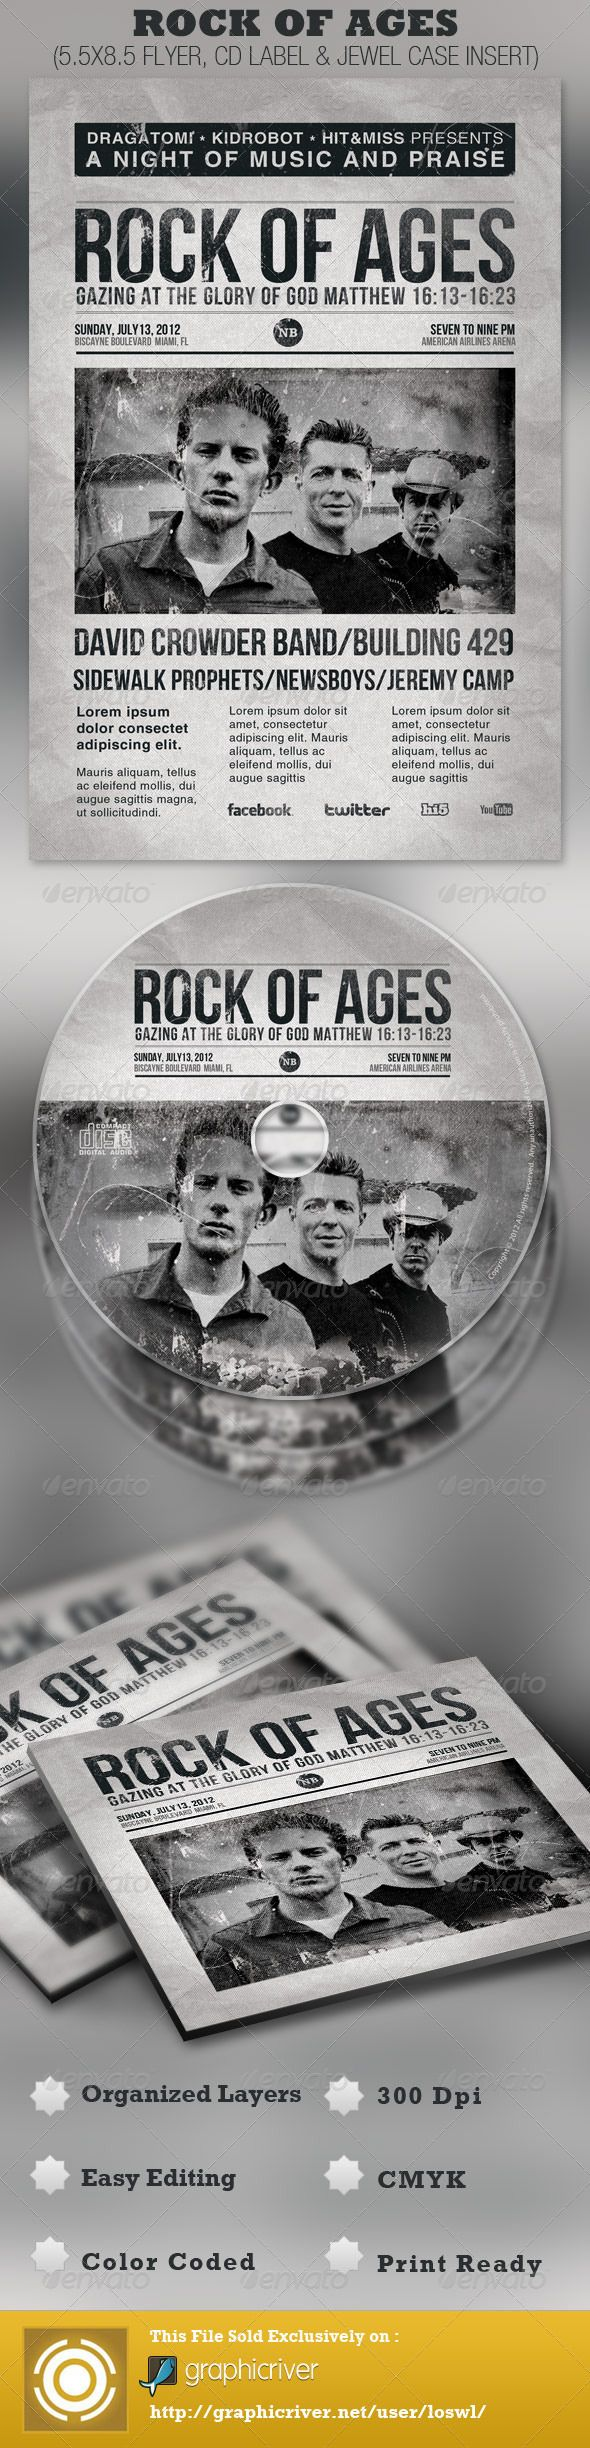 Rock of Ages Church Flyer and CD Template | Template, Gospel concert ...